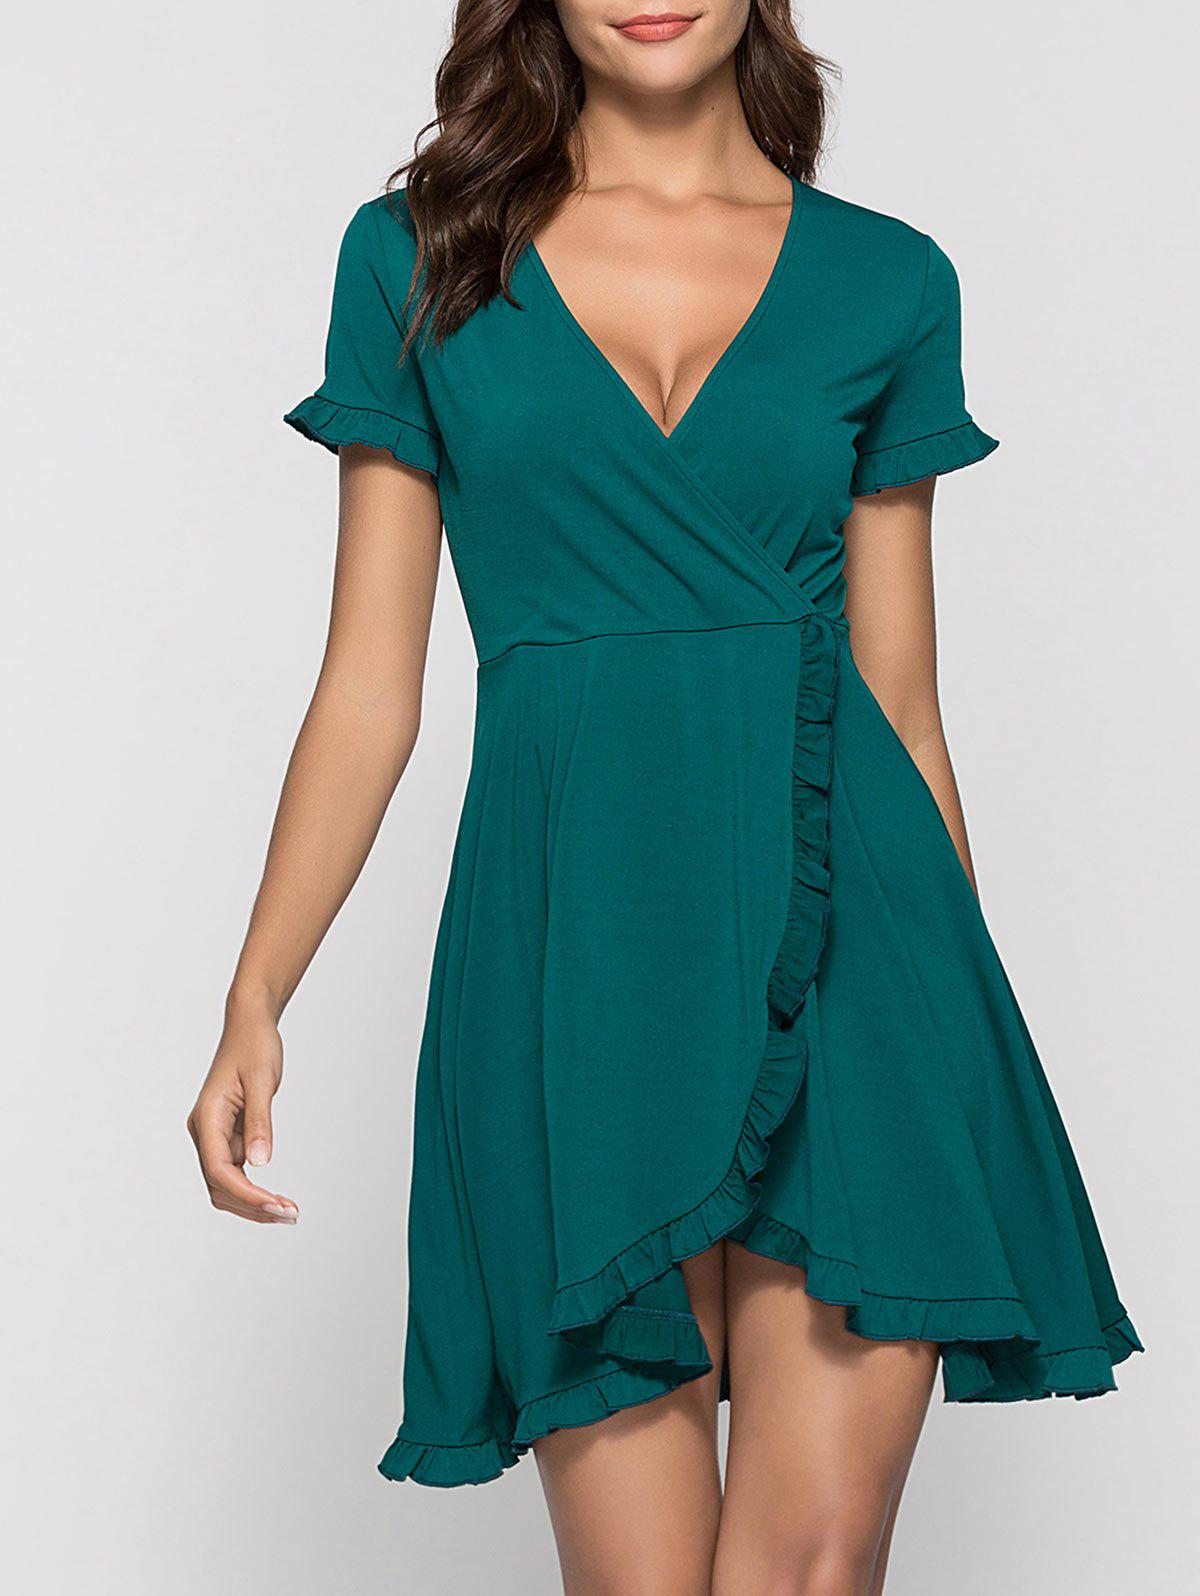 Ruffle Mini Surplice Dress - MEDIUM SEA GREEN S